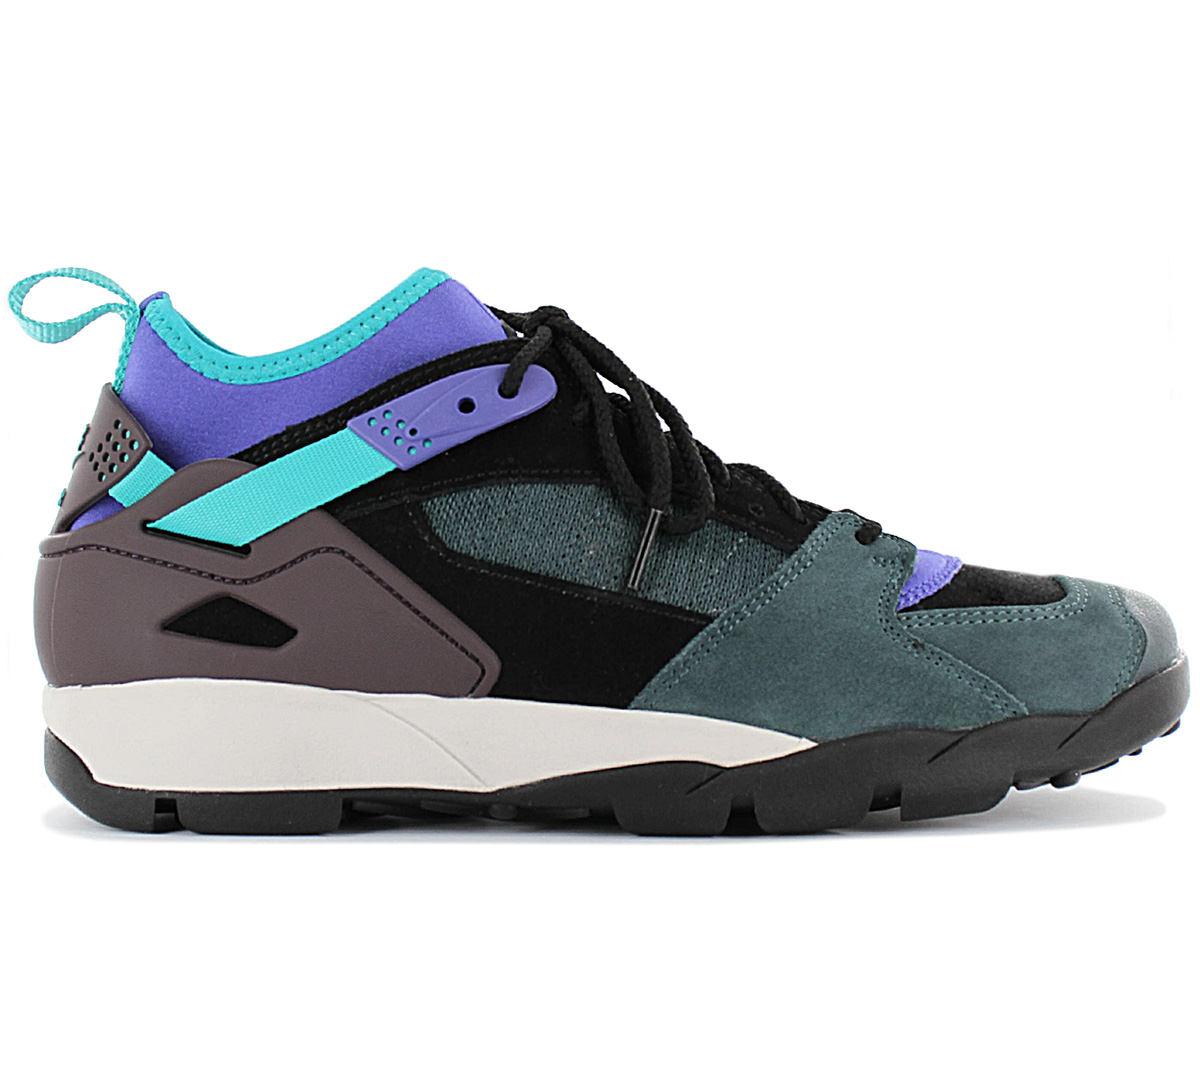 Details about NEW Nike ACG Air Revaderchi AR0479 003 Men´s Shoes Trainers Sneakers SALE